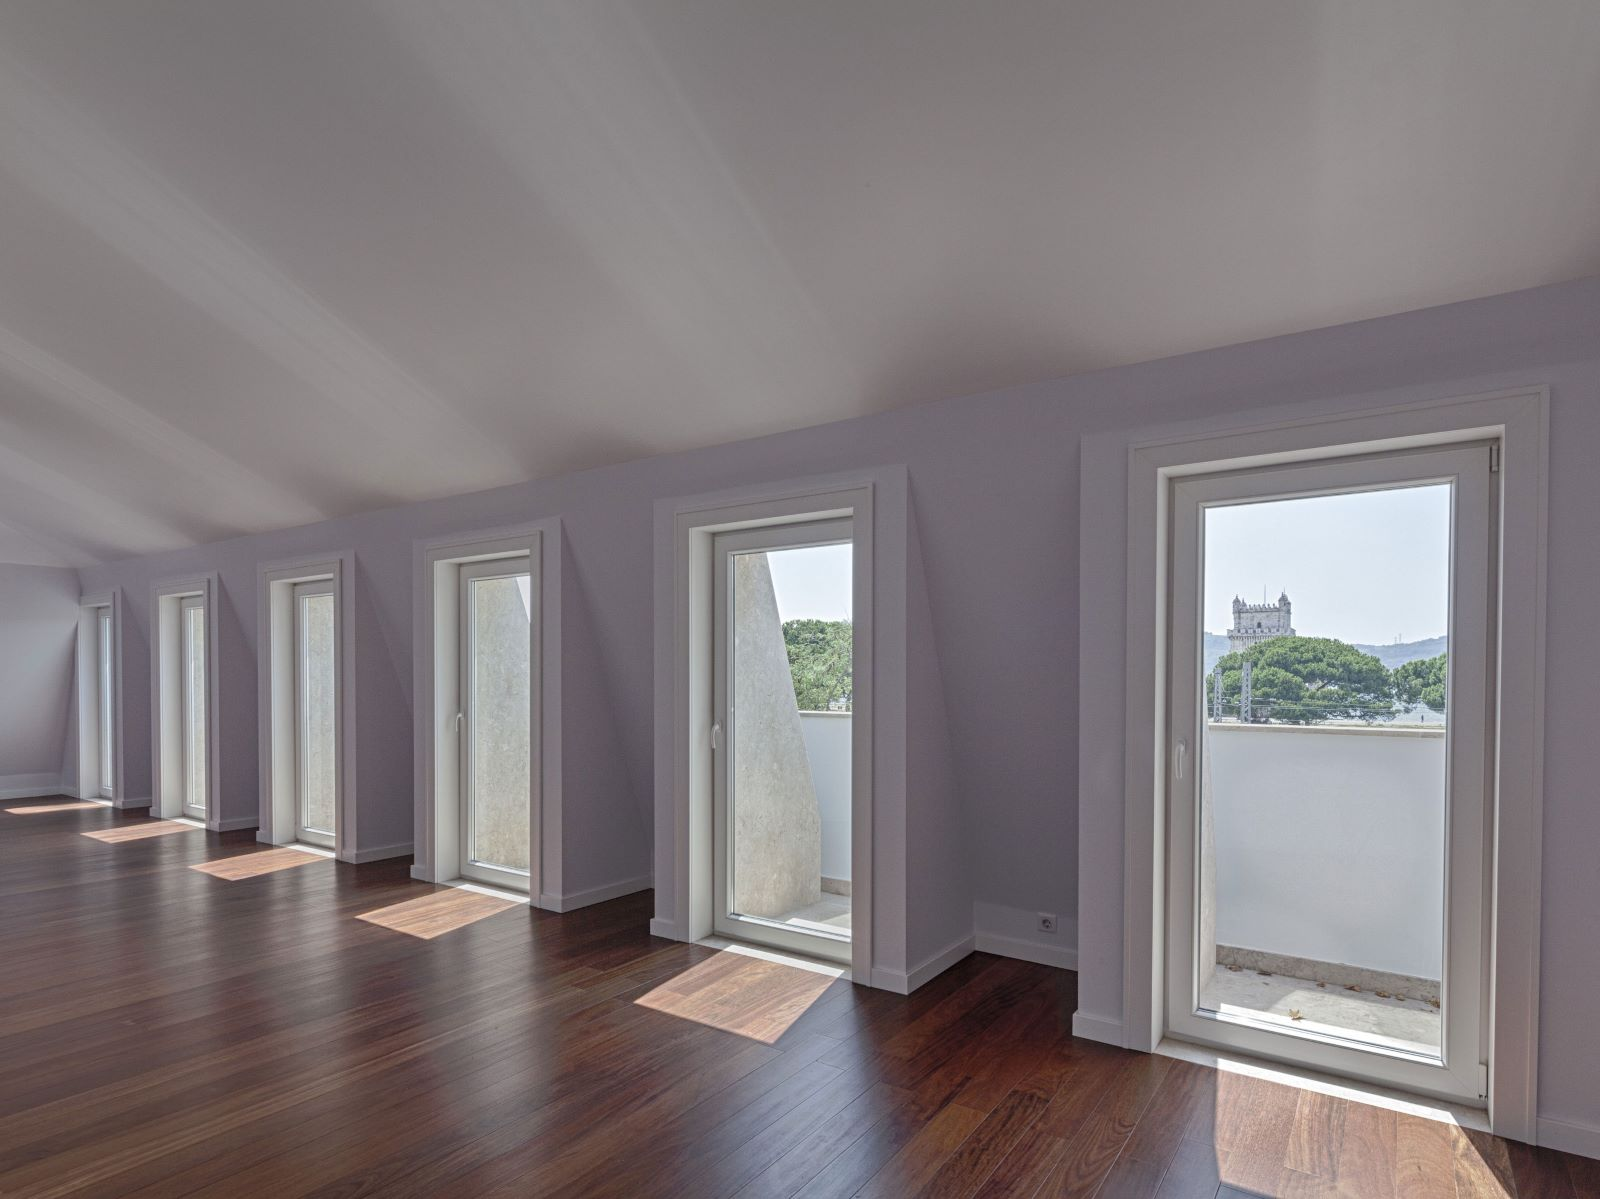 3 BEDROOM APARTMENT WITH BALCONY AND RIVER VIEW, IN BELÉM, LISBON